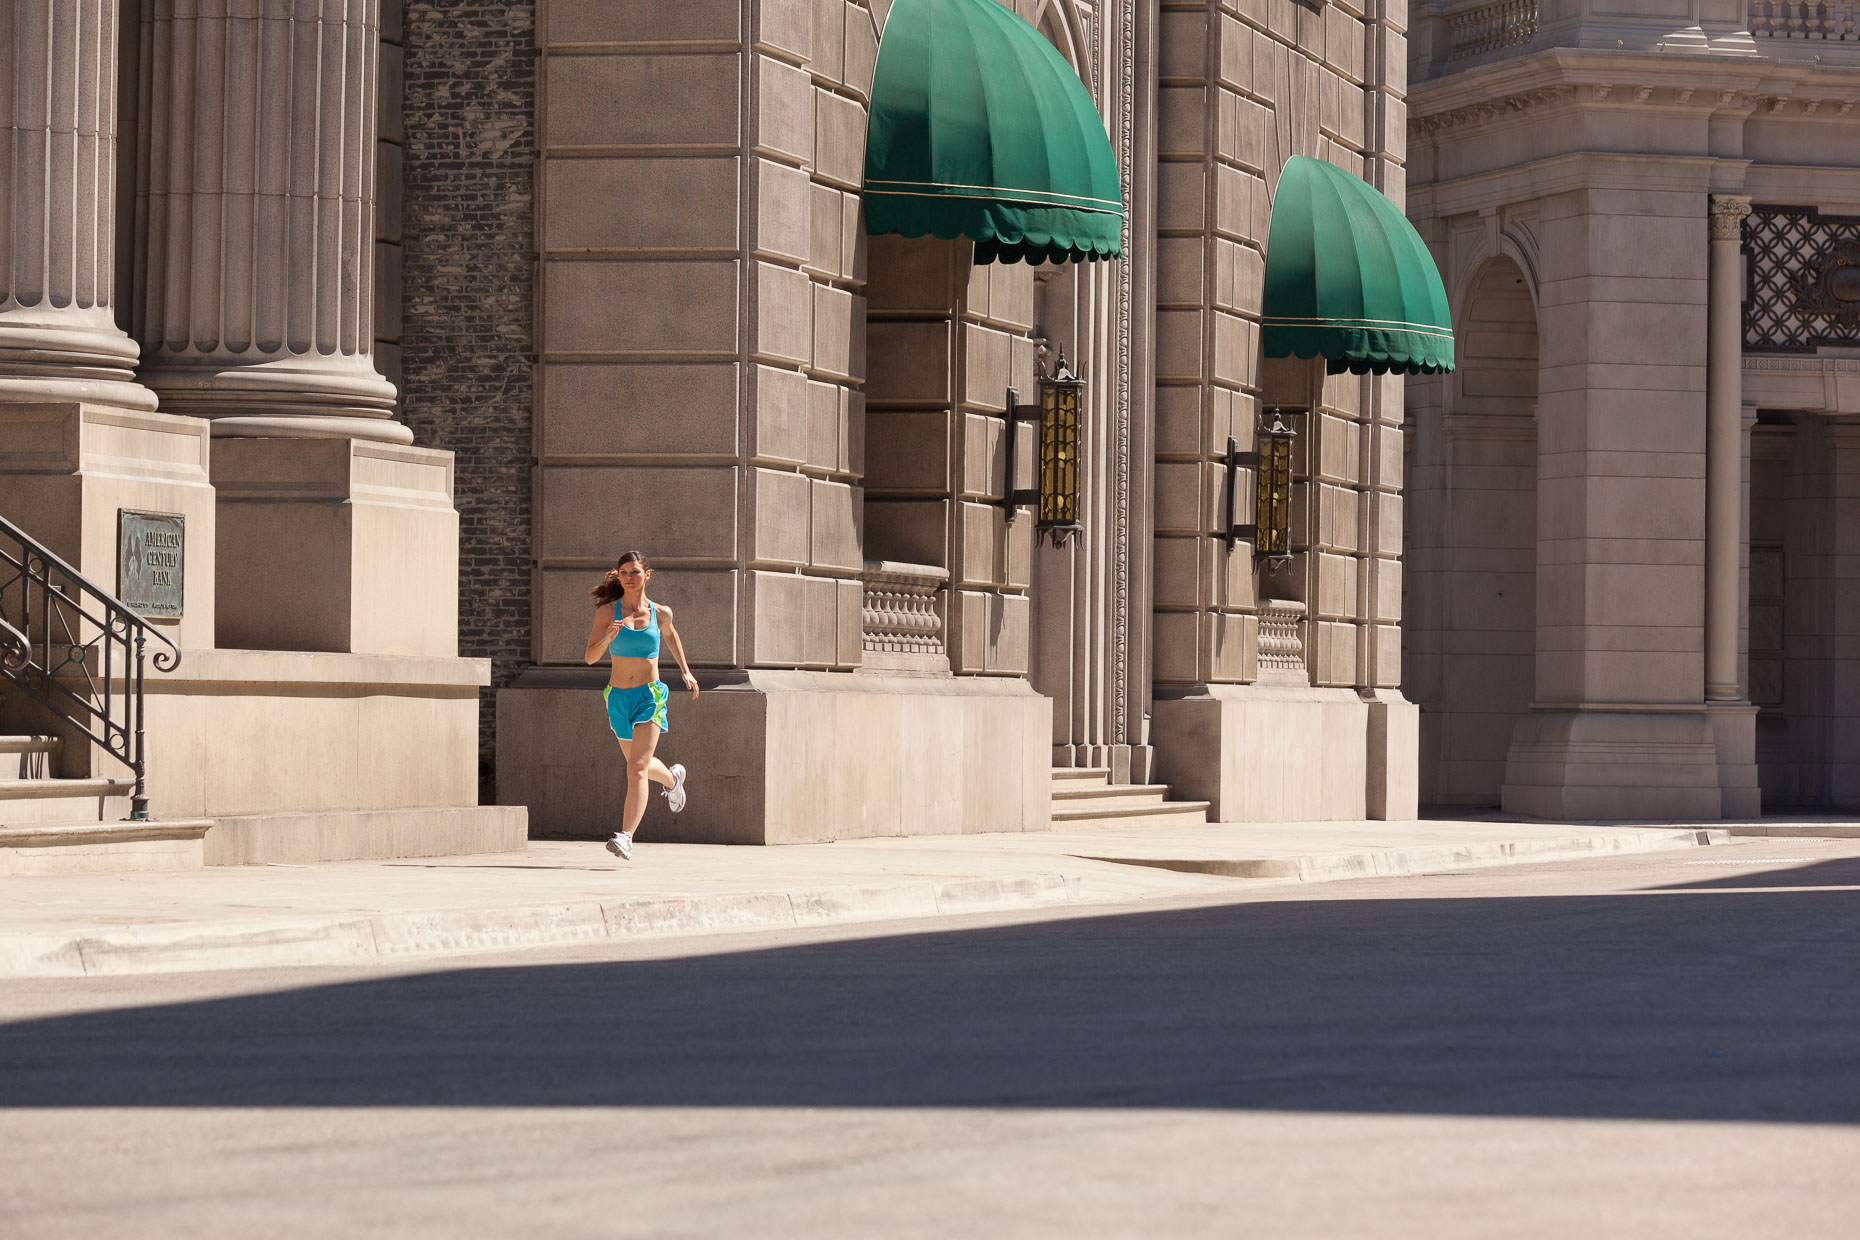 Woman in blue running clothing runs on city street with buildings in background. Fitness. David Zaitz Photography.